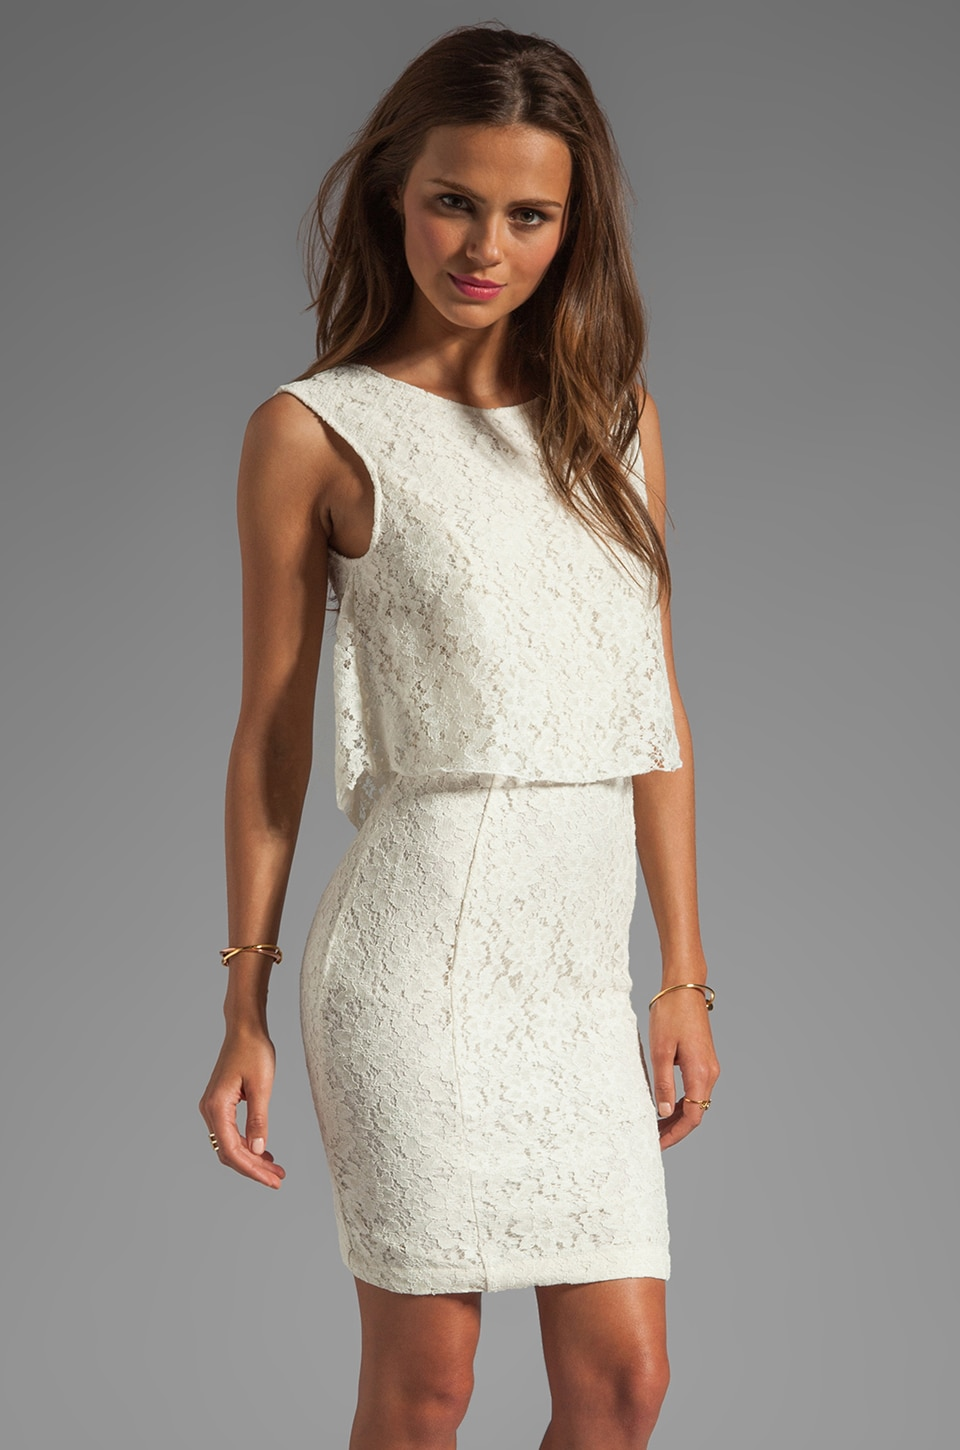 Dolce Vita Glaudusa Raised Lace Tank Dress in Cream